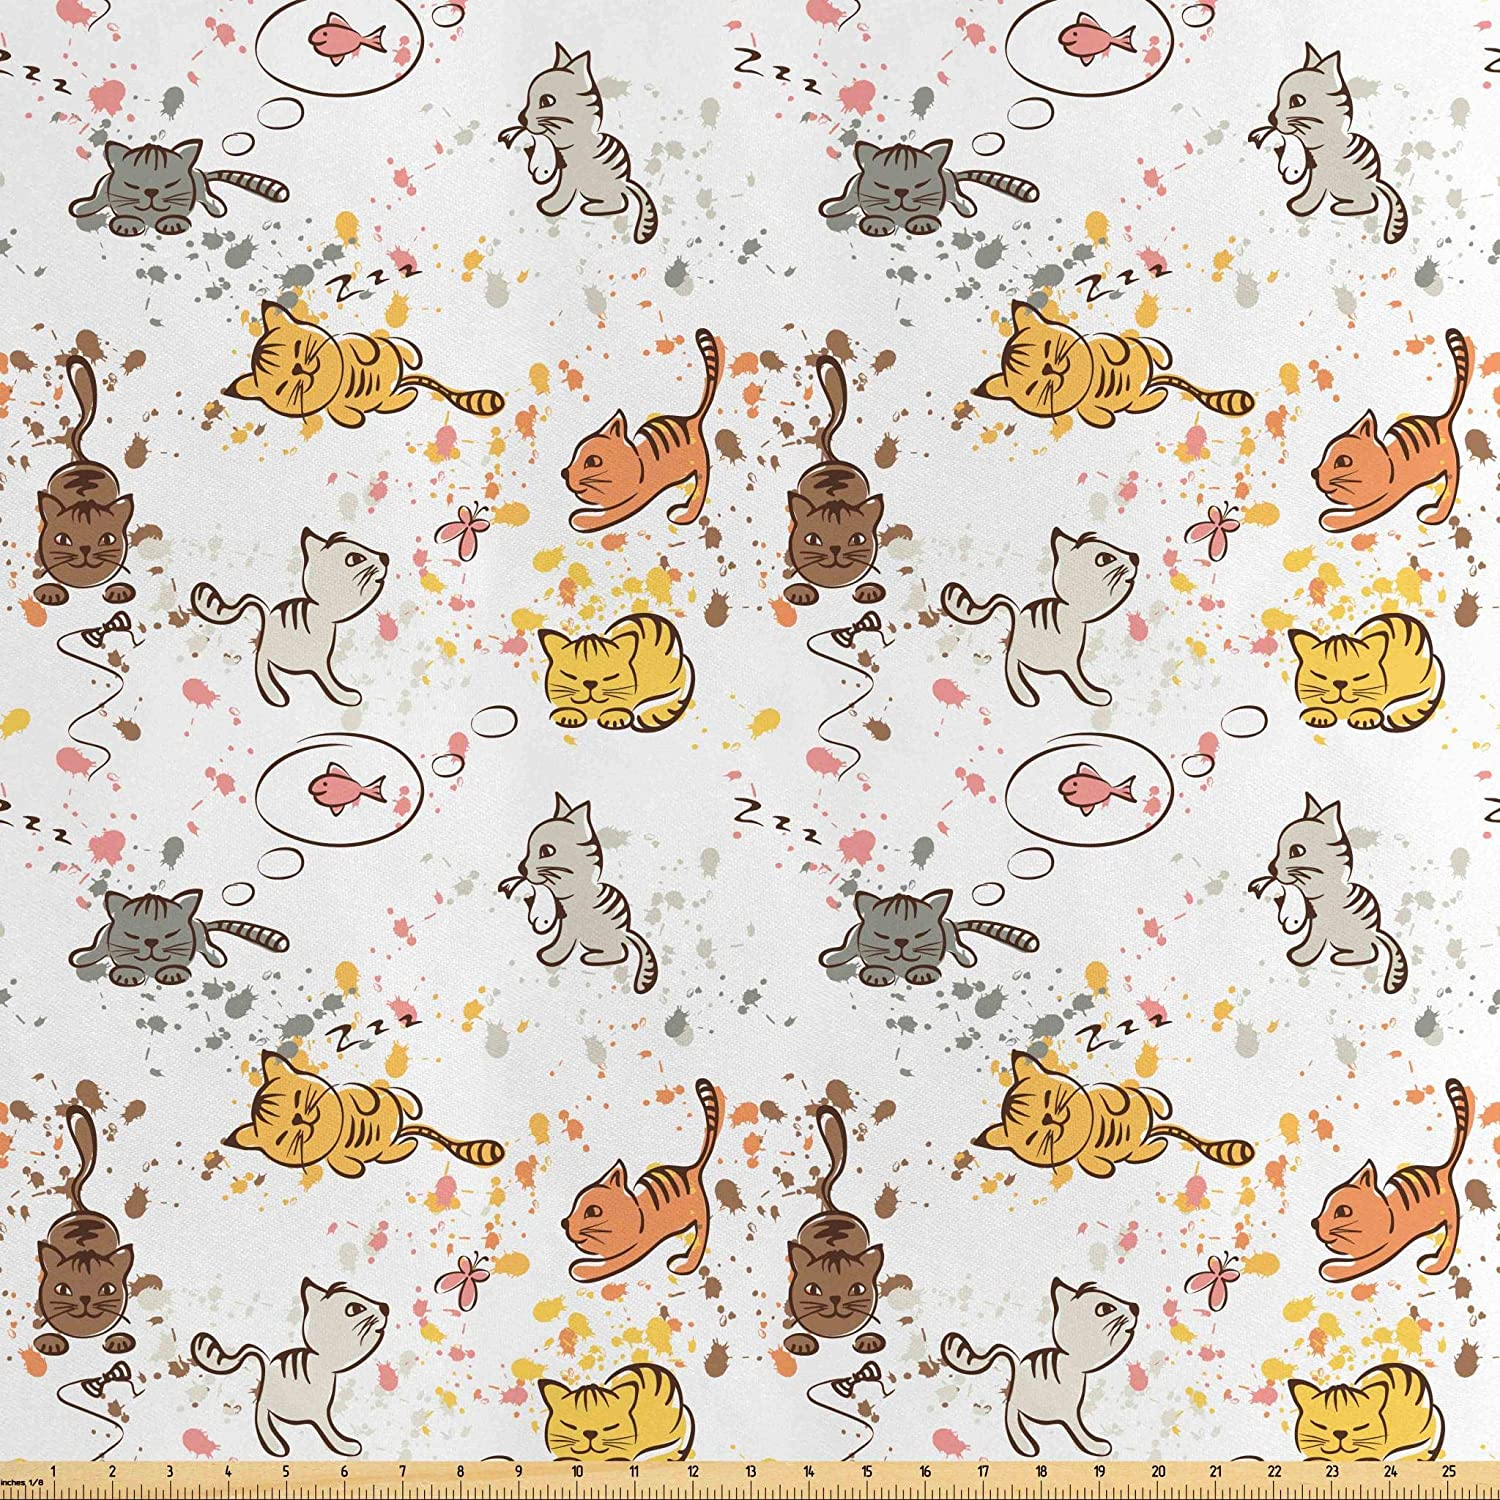 Lunarable Cats Fabric by The Yard, Funny Cats Sleeping Hunting Chasing Butterflies Dreaming of Fish with Color Splashes, Decorative Satin Fabric for Home Textiles and Crafts, 2 Yards, Multicolor